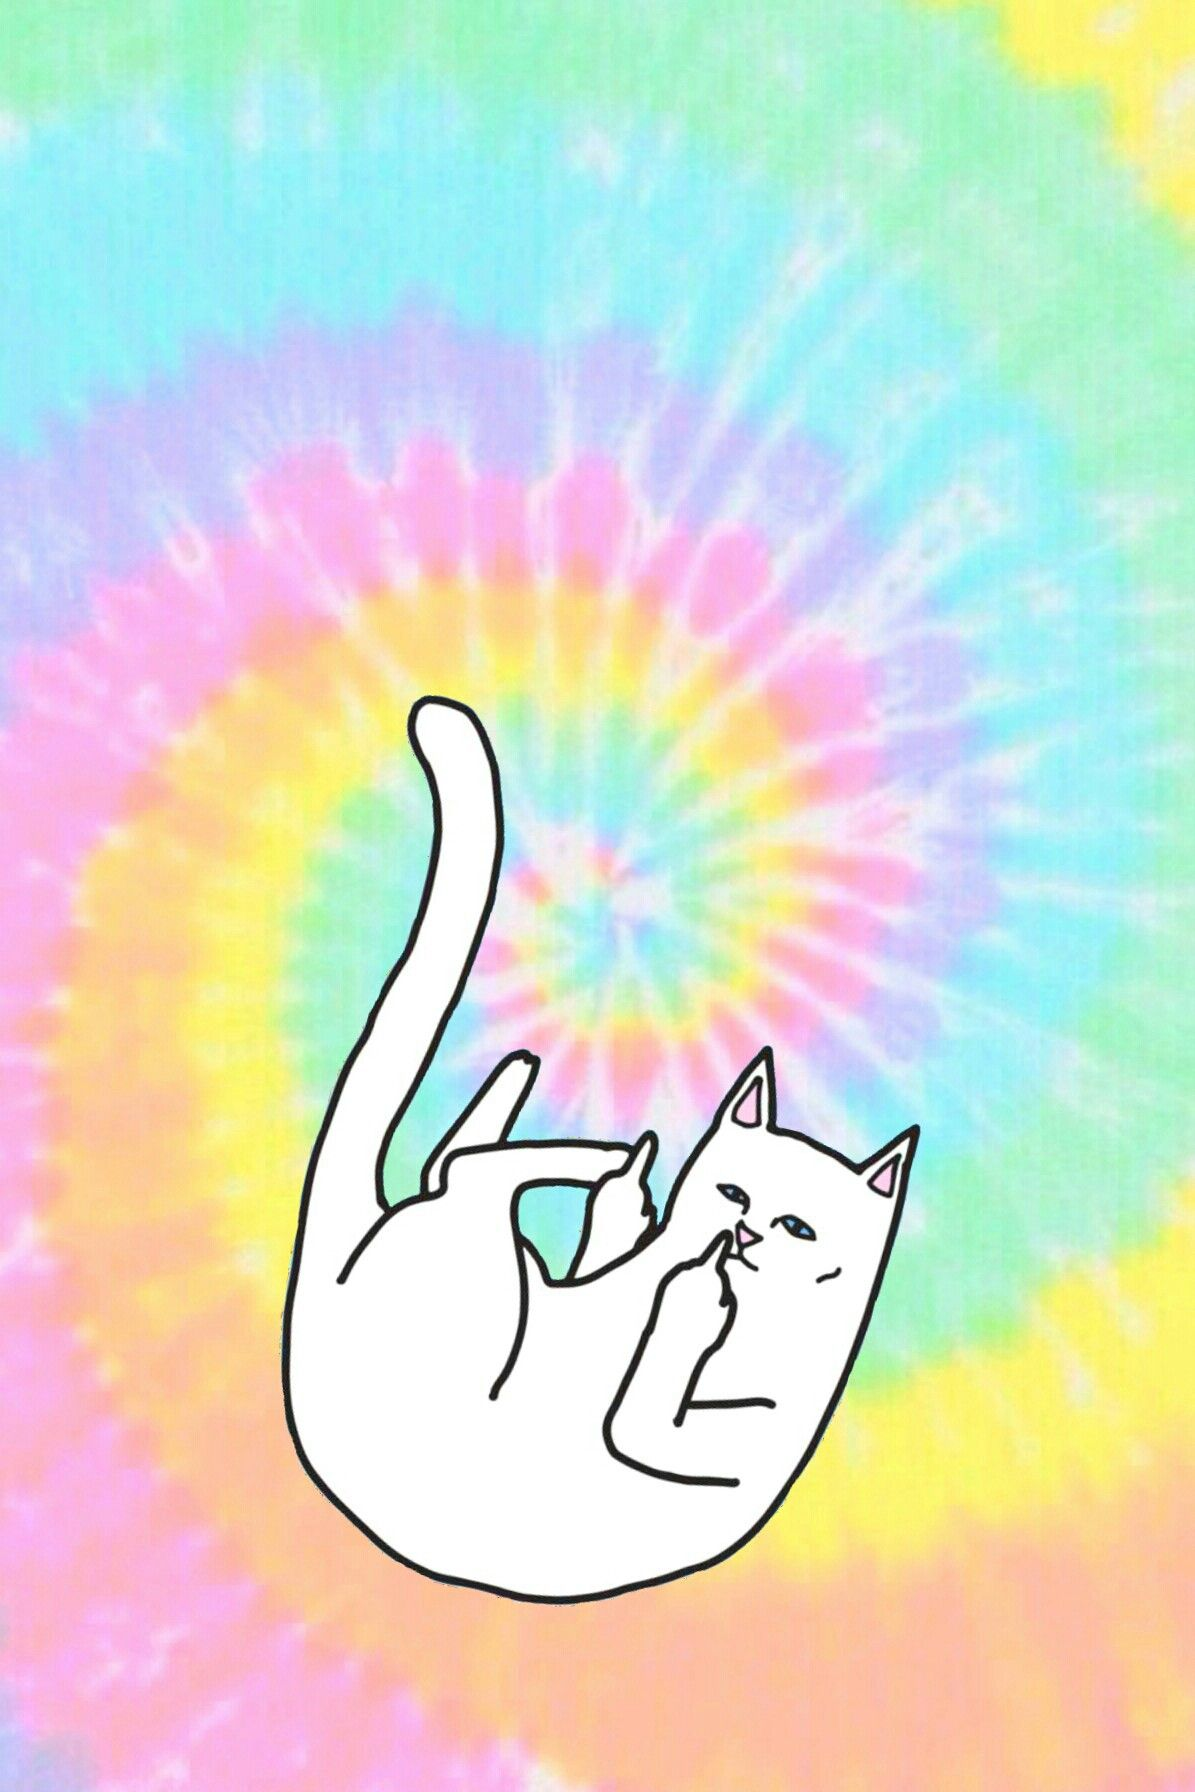 Ripndip iphone wallpaper #ripndip #middle #finger #cat #wallpaper #iphone #tie #dye | Ripndip ...